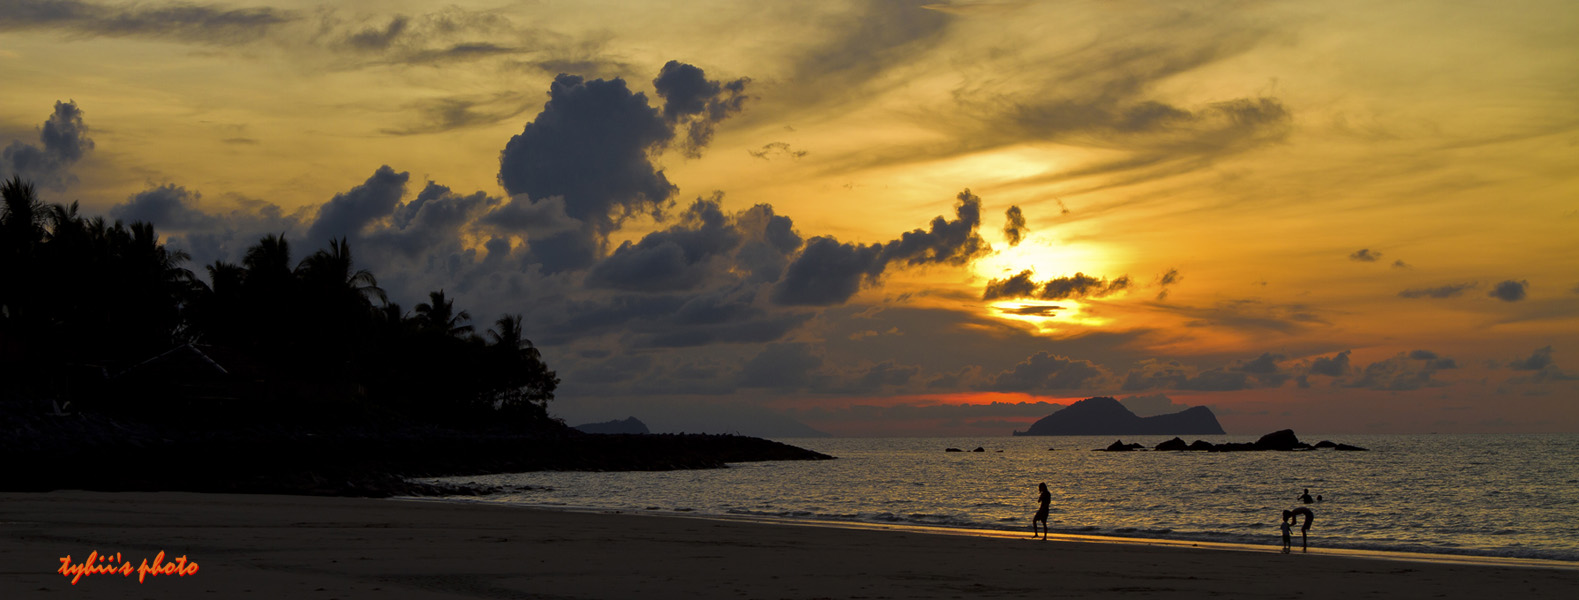 Sunset at Damai Puri